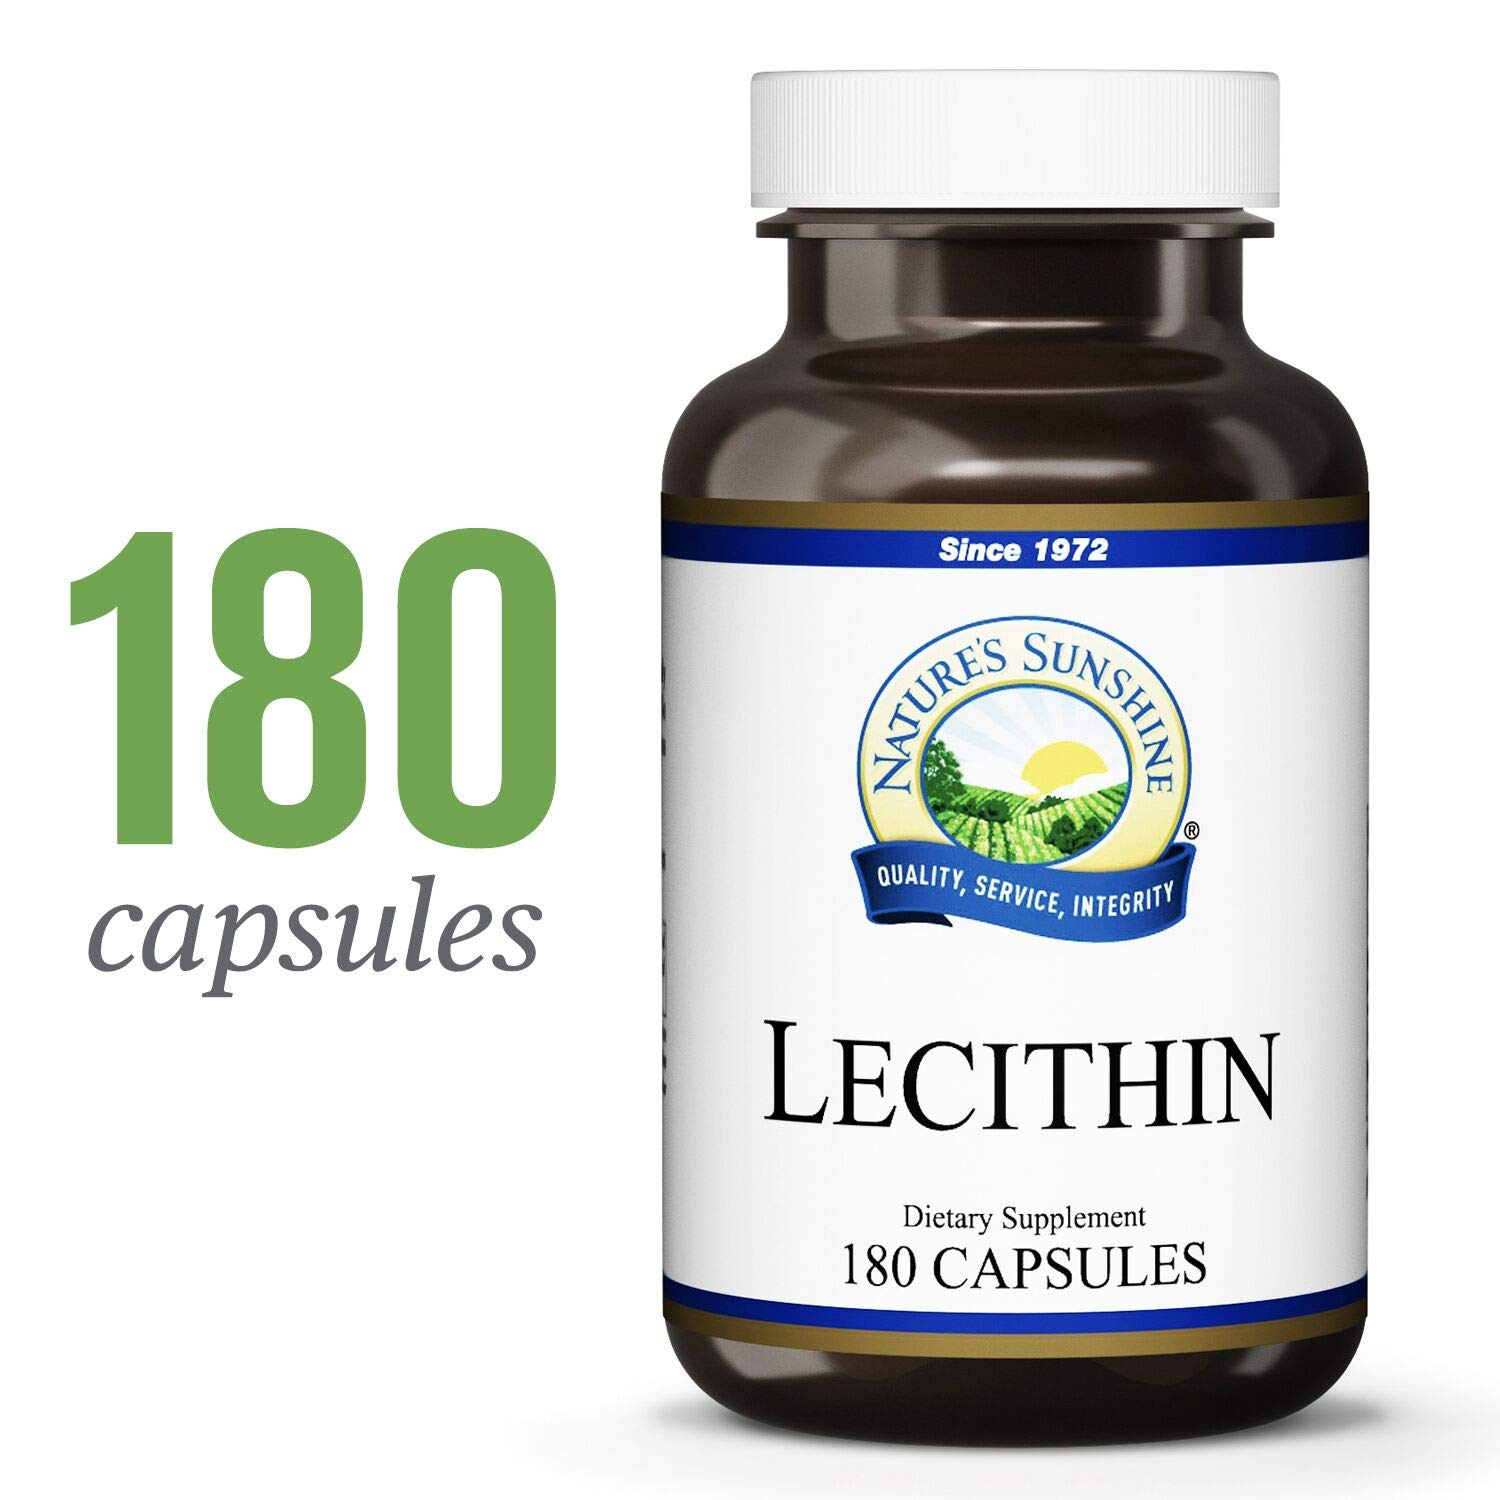 Nature's Sunshine Lecithin, 180 Softgels | Supports The Nervous System, Supports Healthy Circulatory System Function, and Helps Cell Membranes by Nature's Sunshine